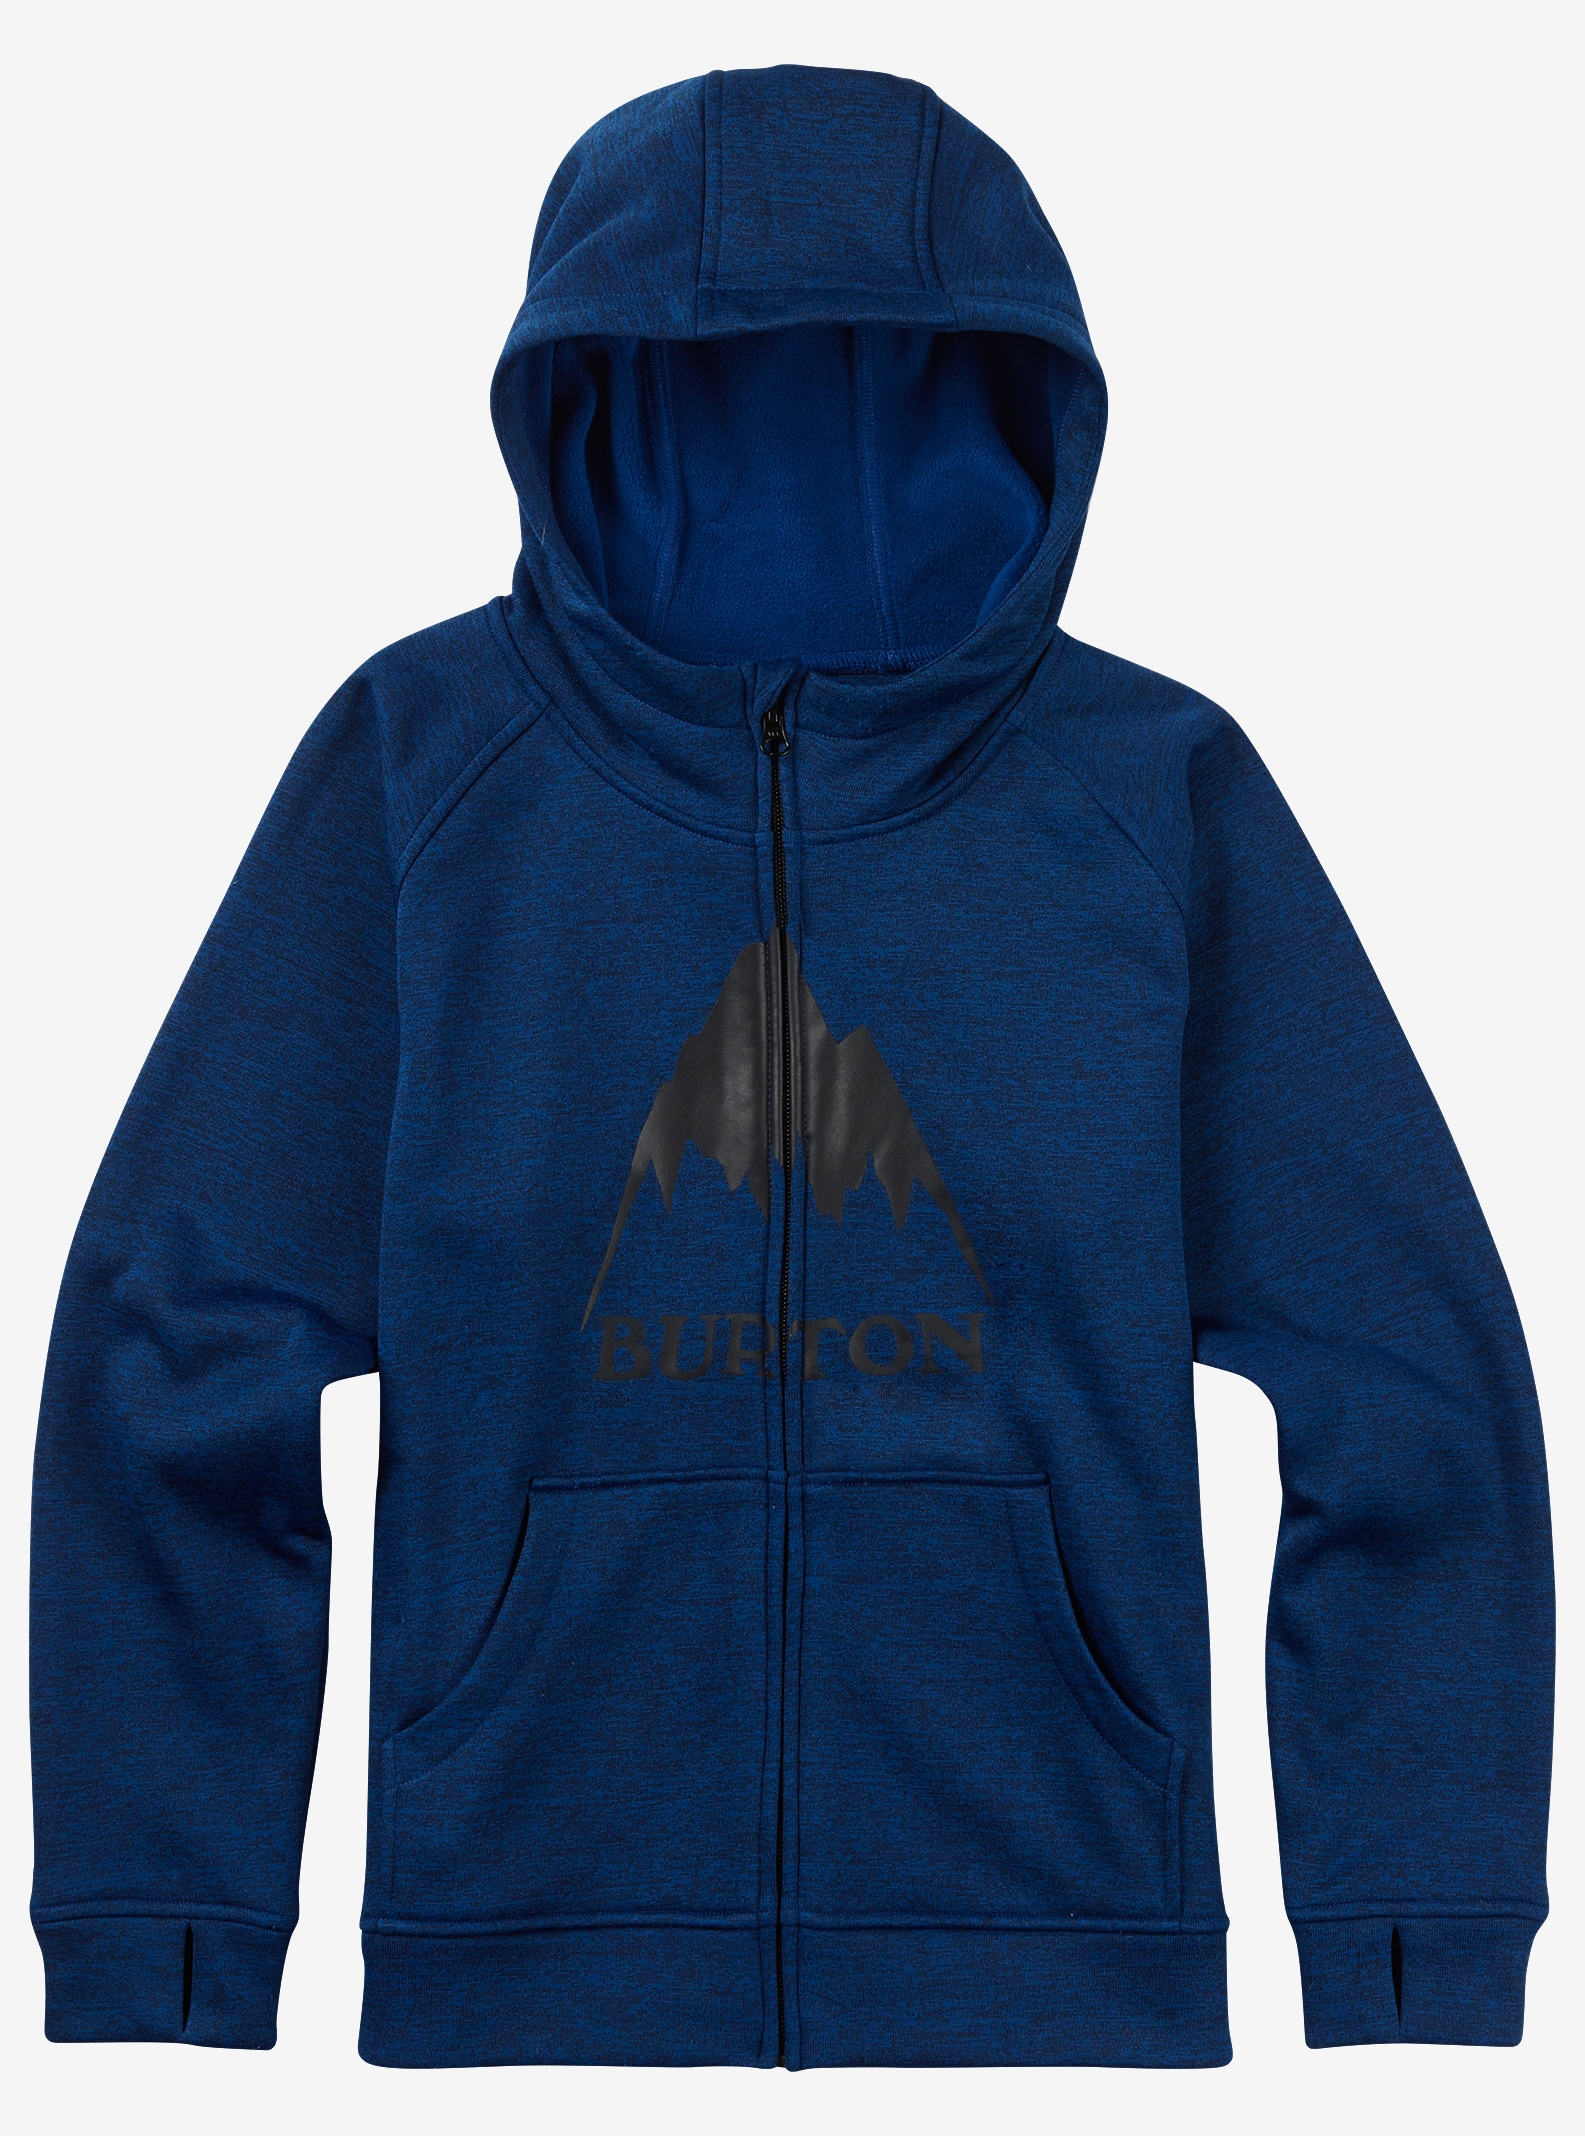 Burton Boys' Oak Full-Zip Hoodie shown in True Blue Heather